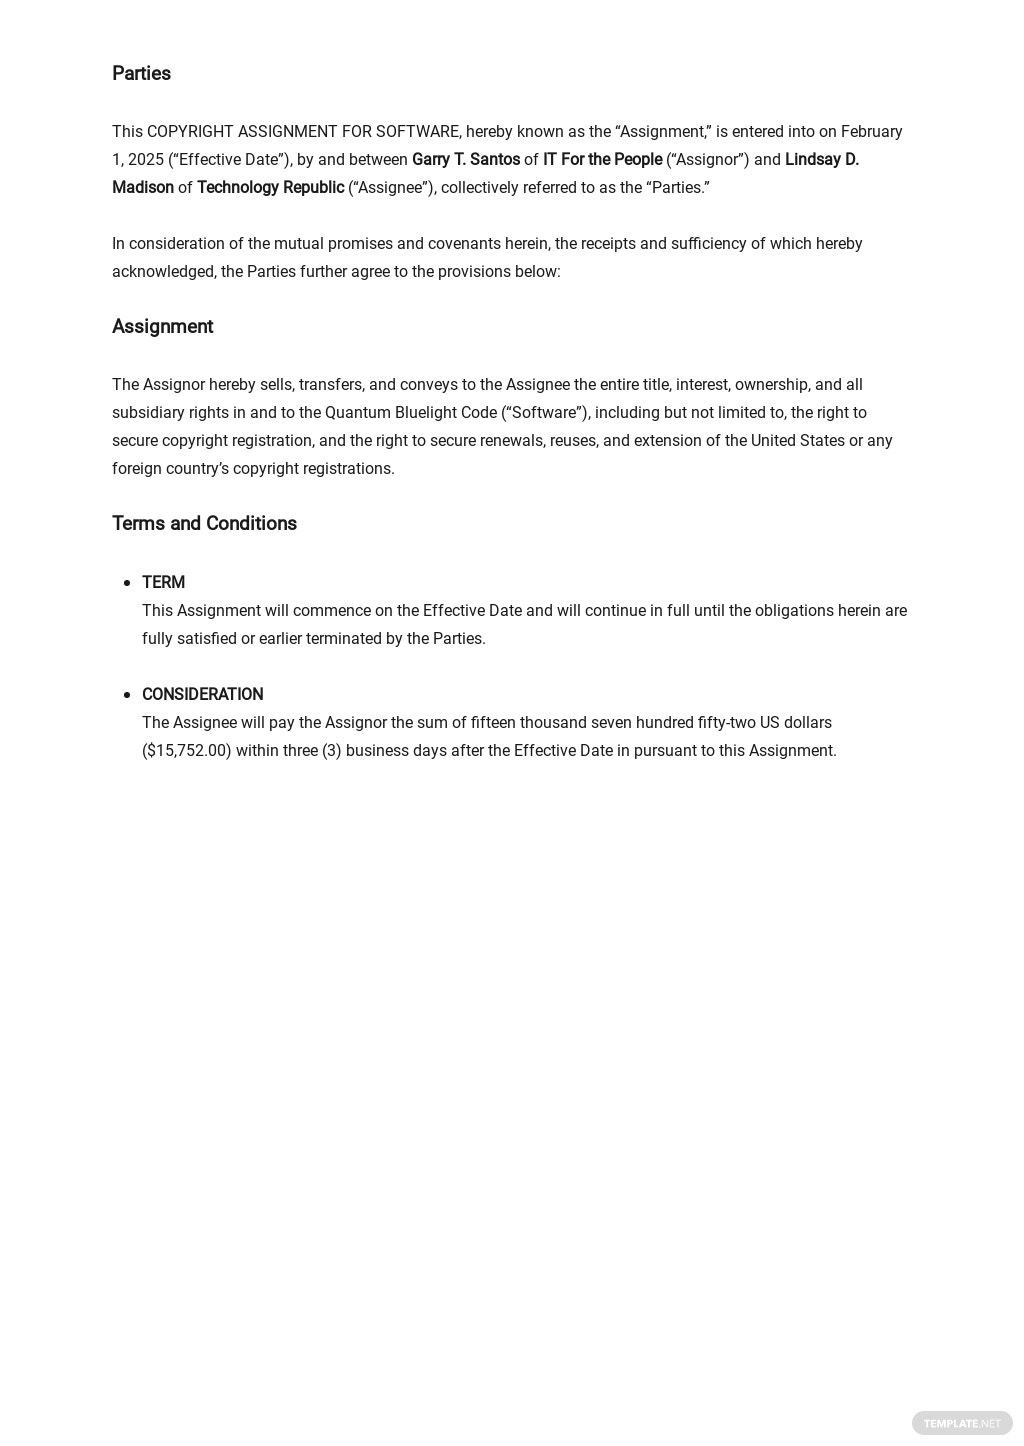 Copyright Assignment For Software Template 1.jpe